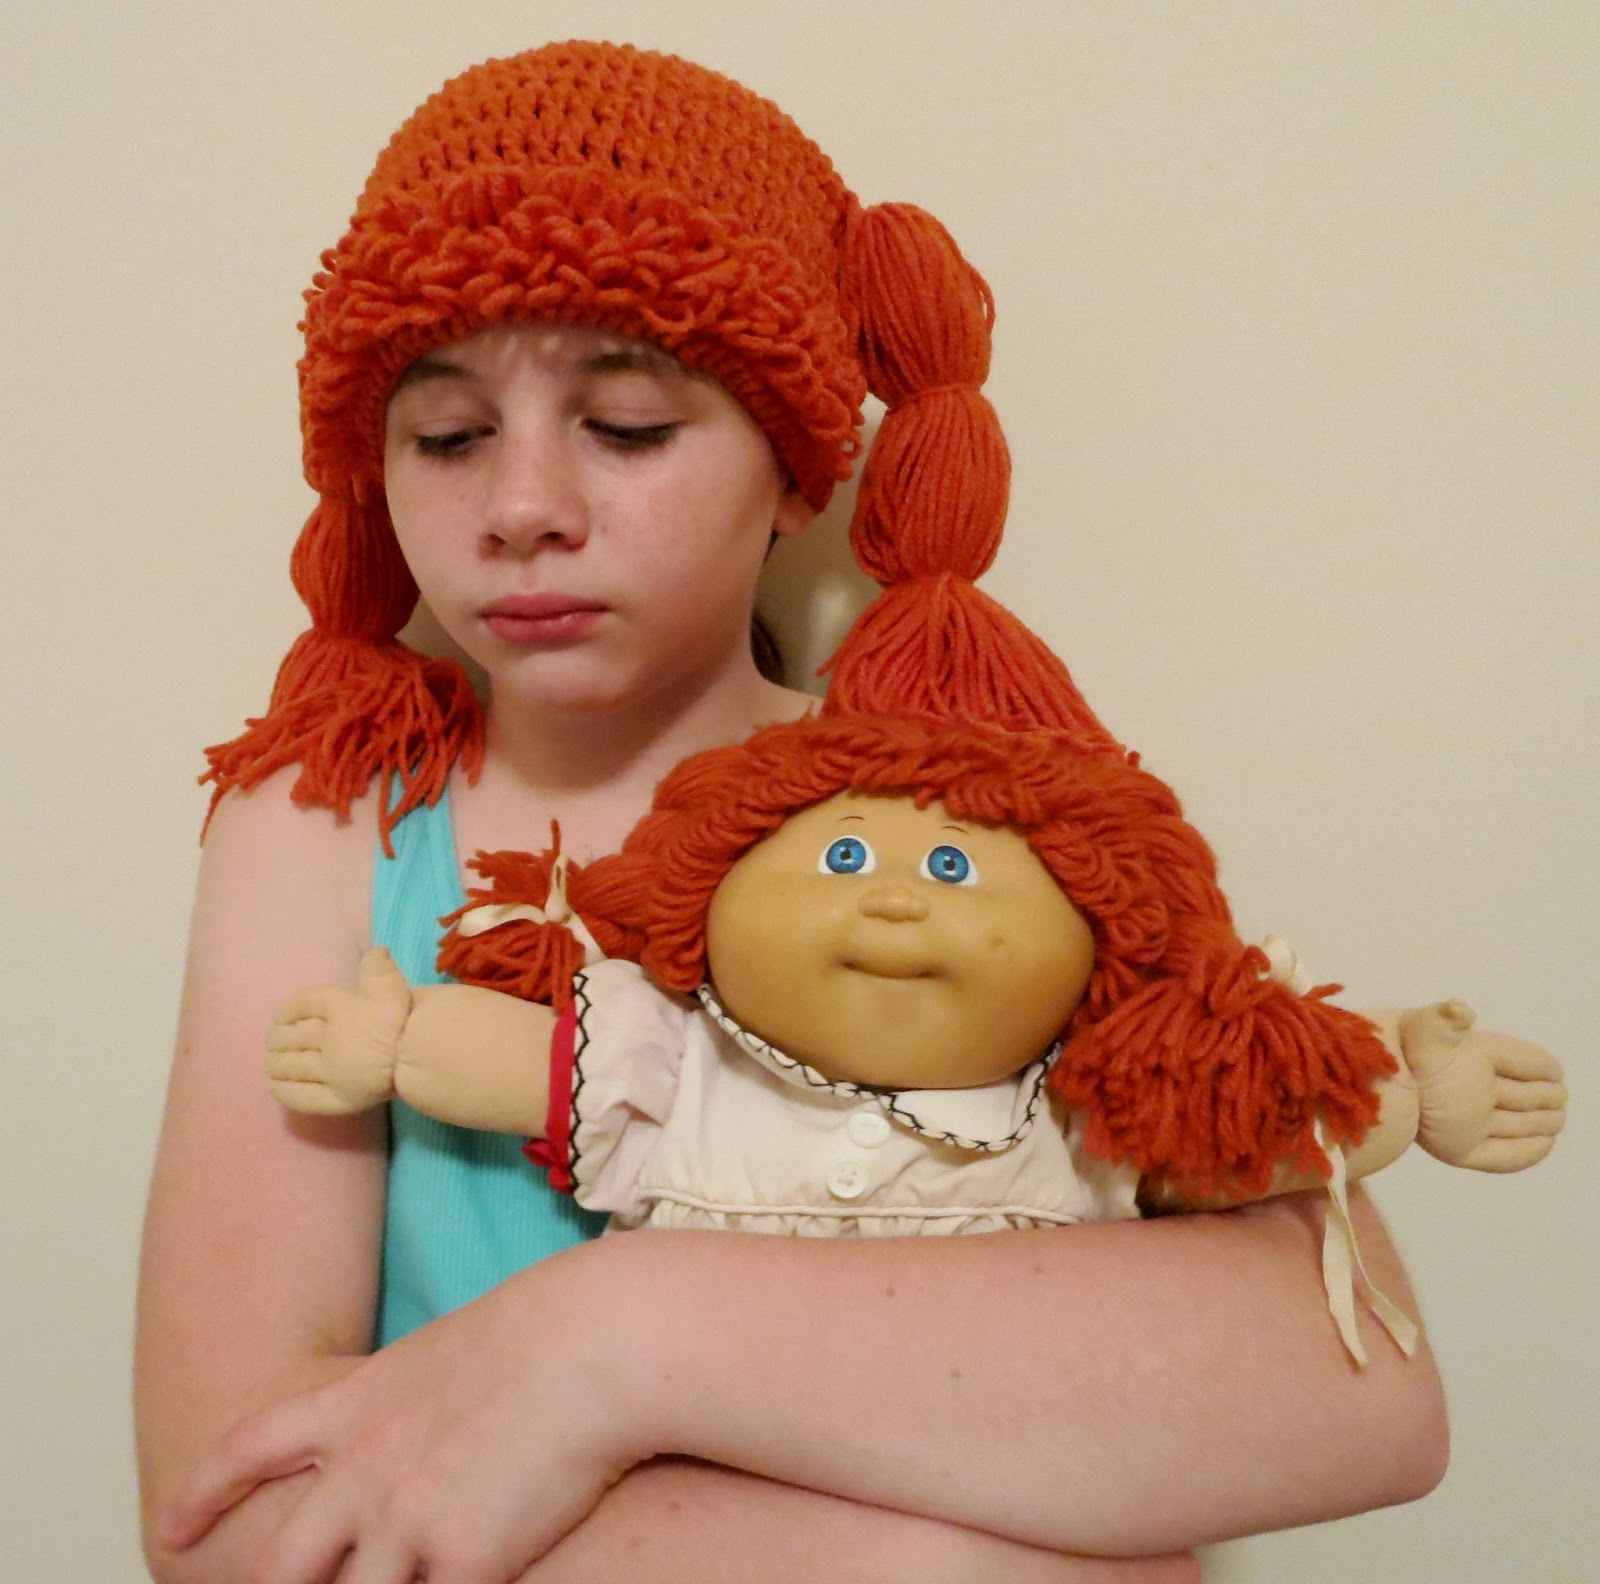 Crochet Pattern For Cabbage Patch Baby Hat : My Mauve Shoes: The Cabbage Patch Kids inspired crochet hat